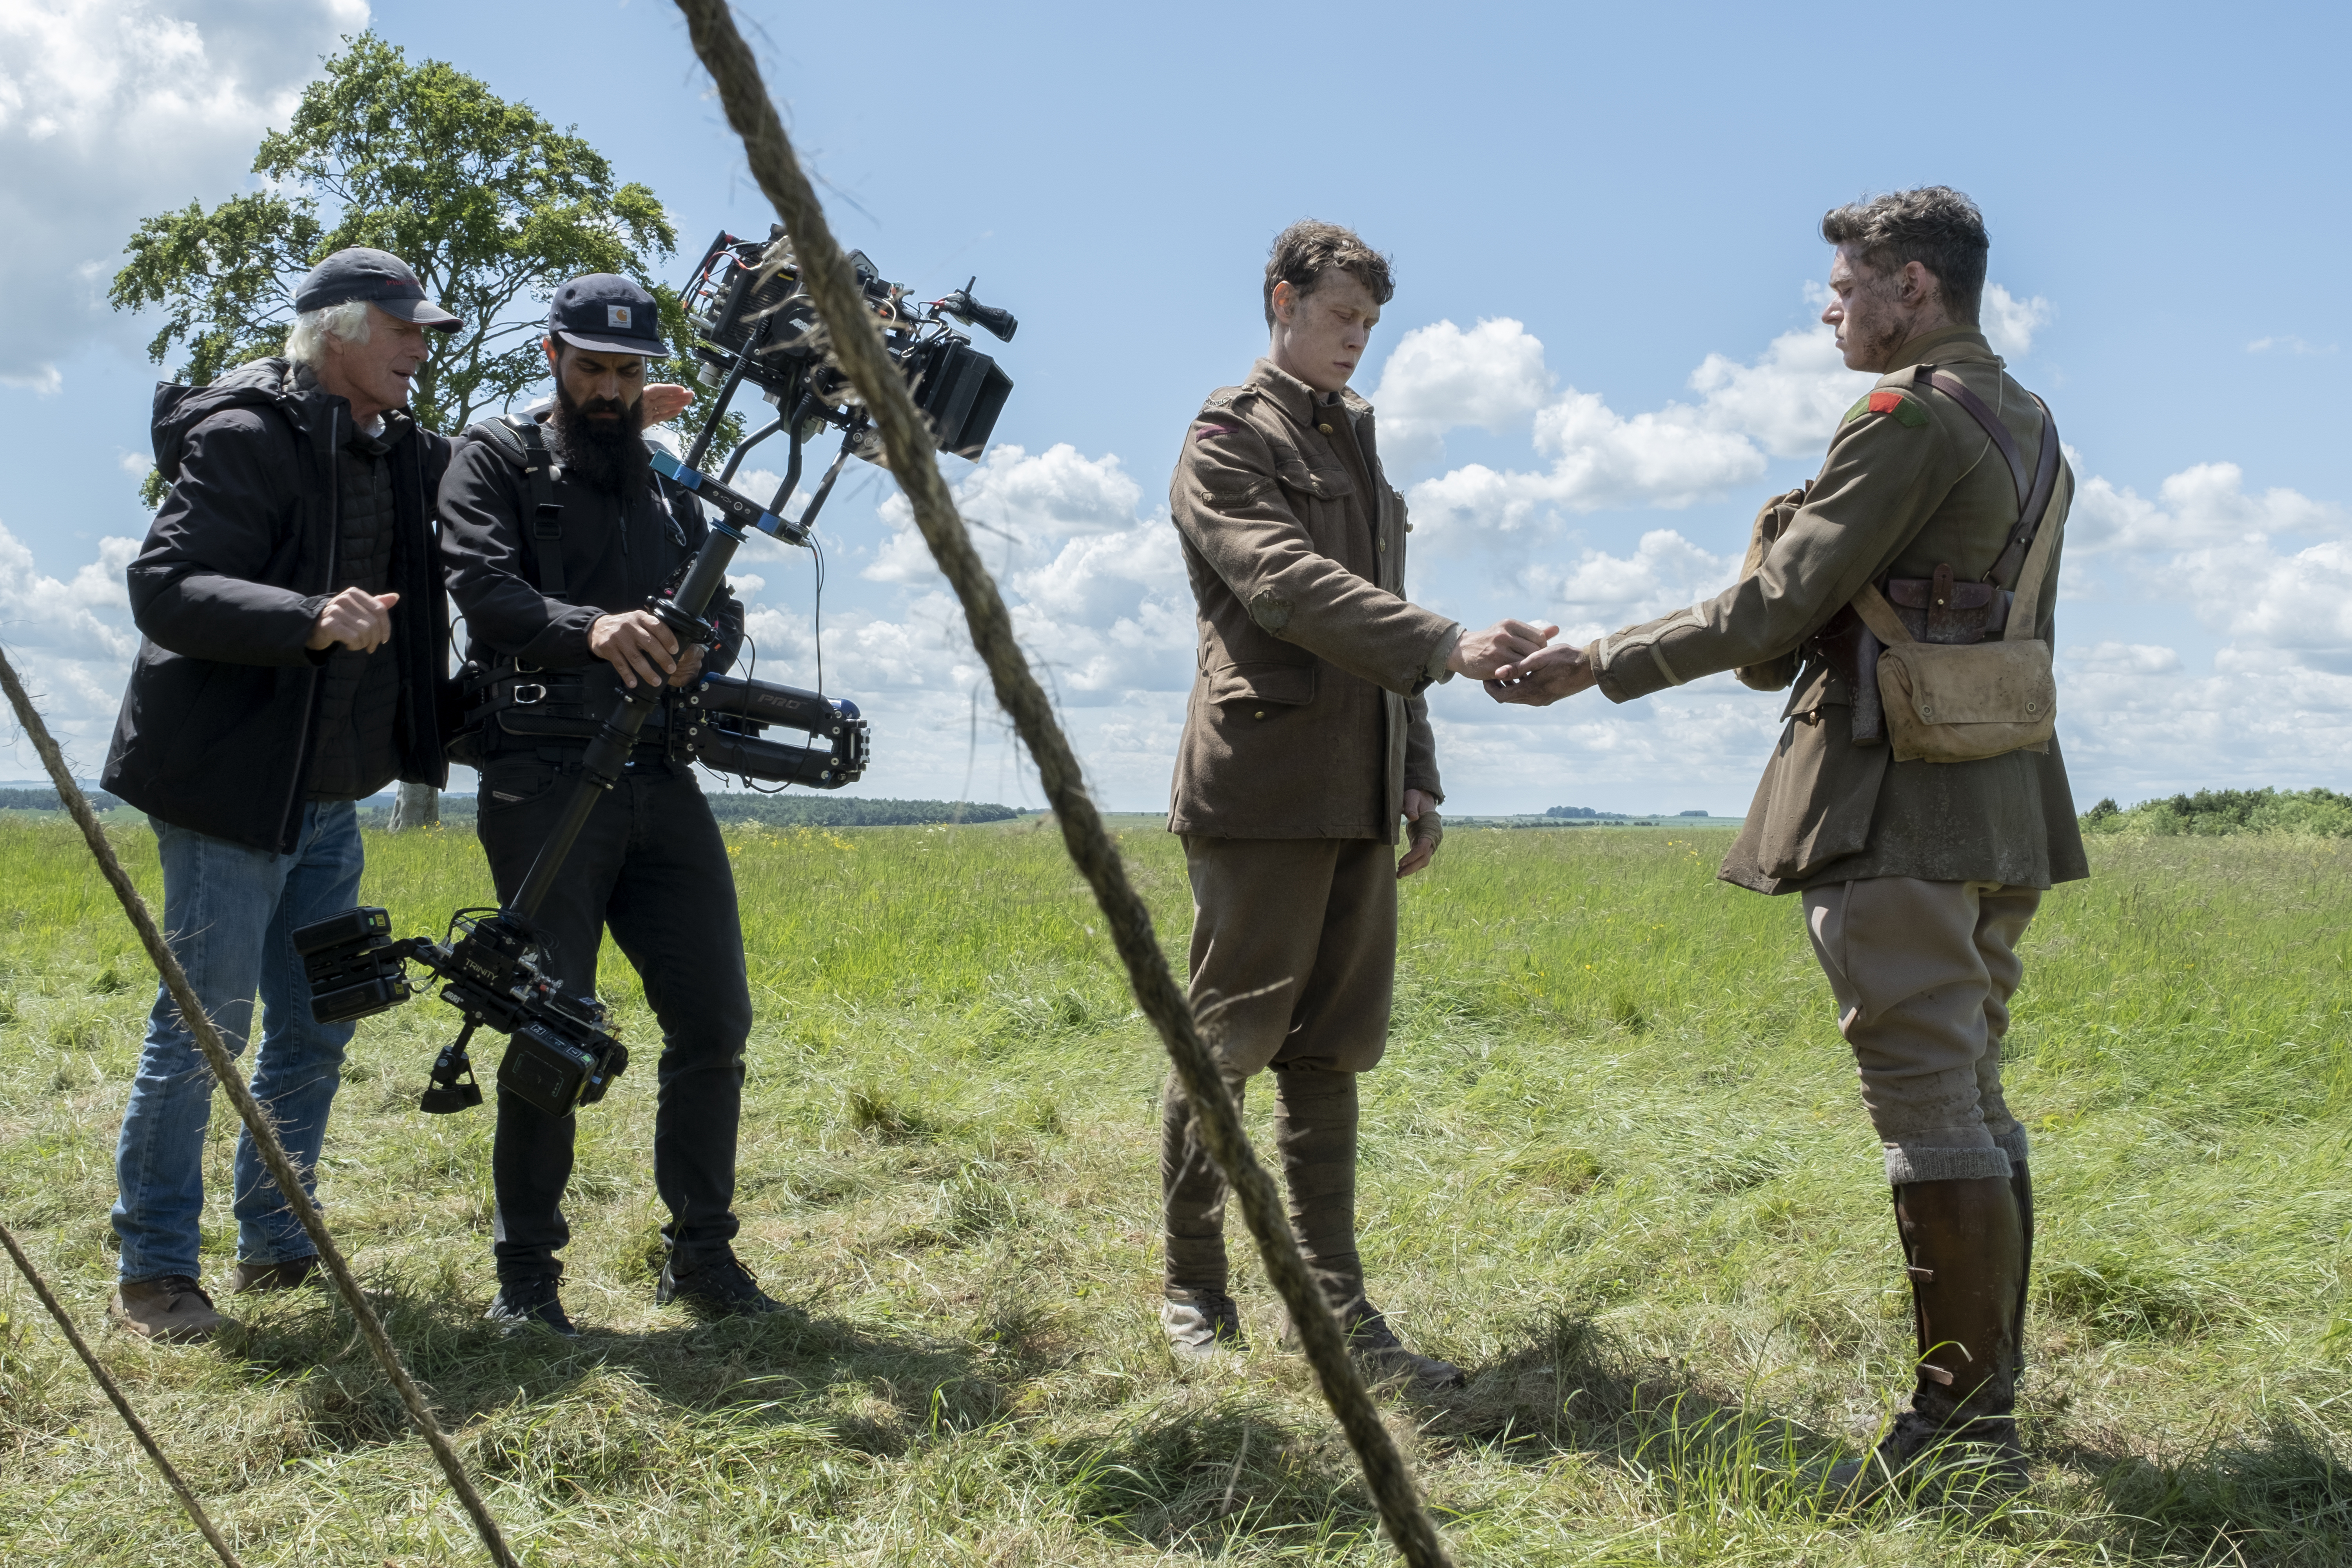 How '1917' Showcases the Future of Camera Stabilization and Movement